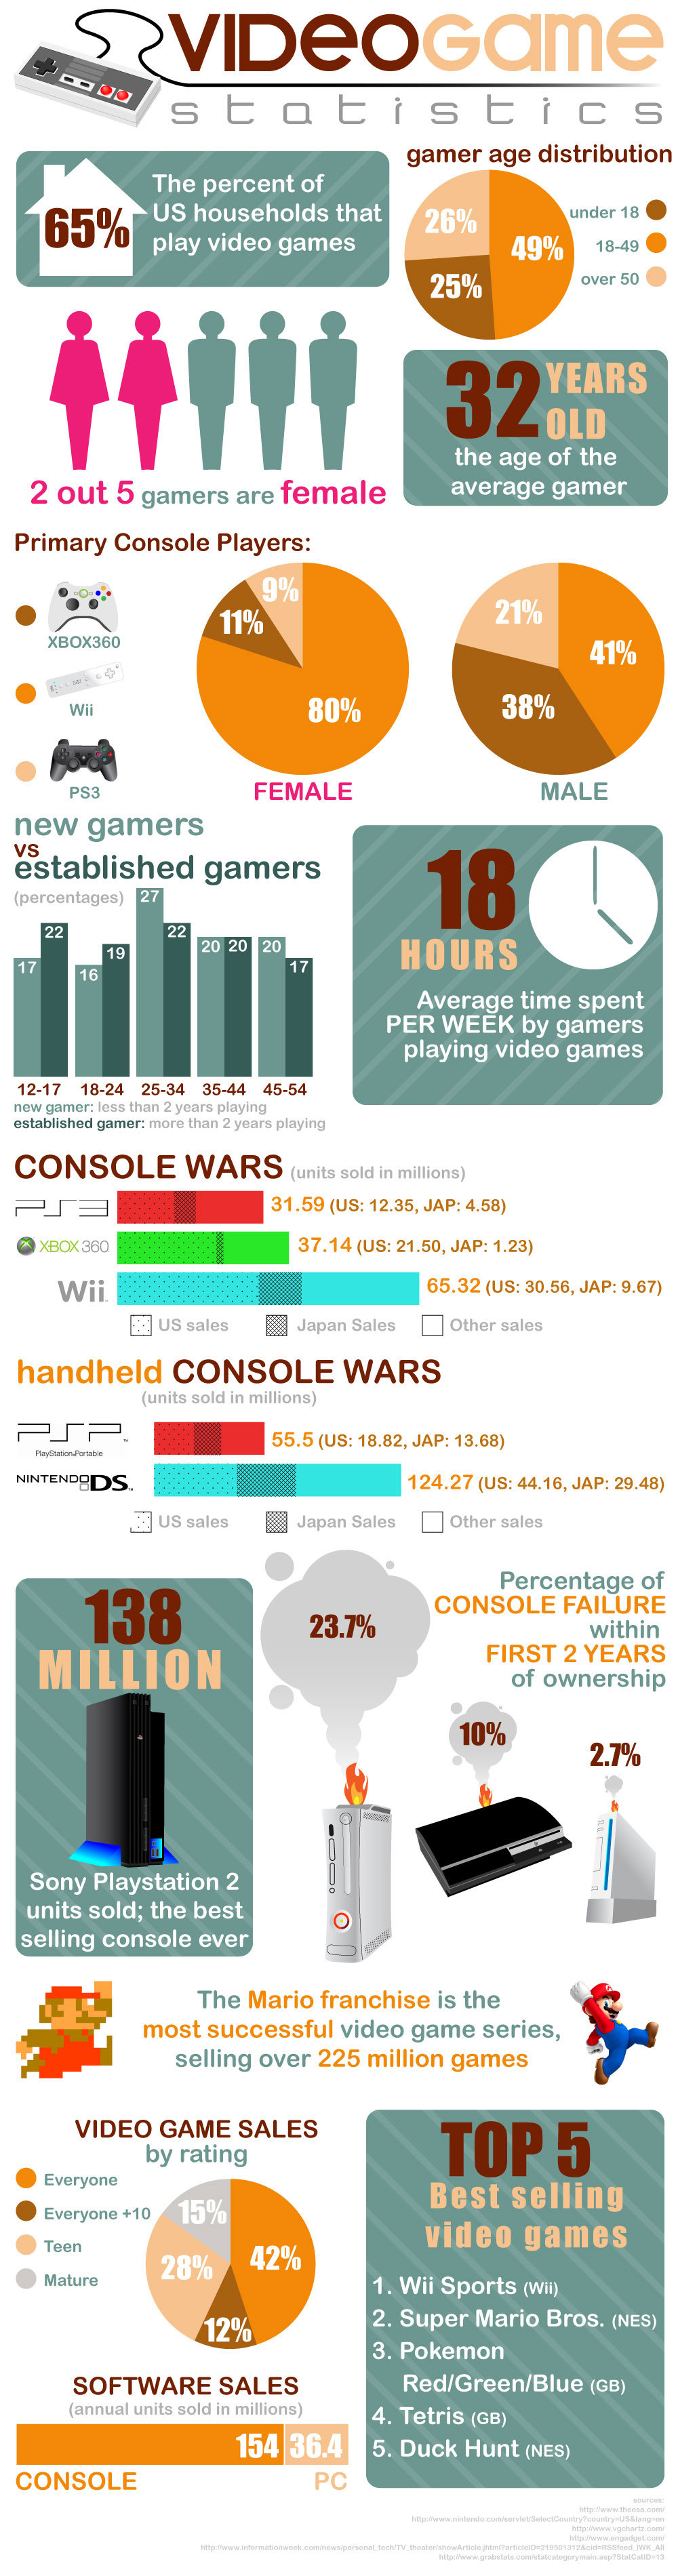 image - video game stats